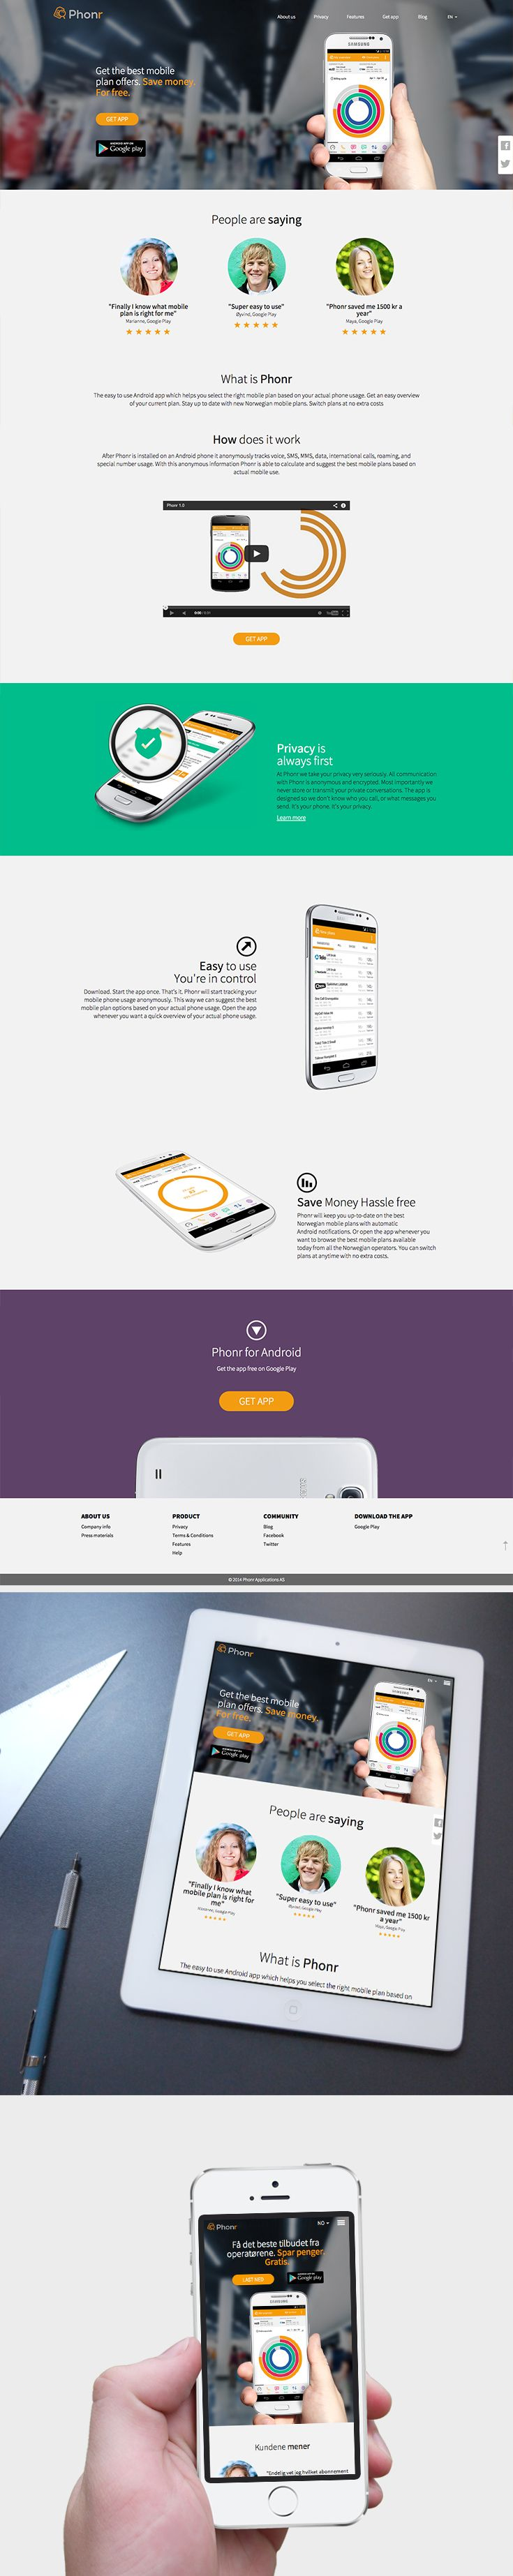 Phonr App - RESPONSIVE PRODUCT WEBSITE by www.chilidagency.com This responsive web design website presents, promotes and sells Phonr App - the easy to use Android app which helps you select the right mobile plan based on your actual phone usage.  Scope of work: Interface, Design, Wireframes, Graphic Design, HTML5, Sass, JavaScript